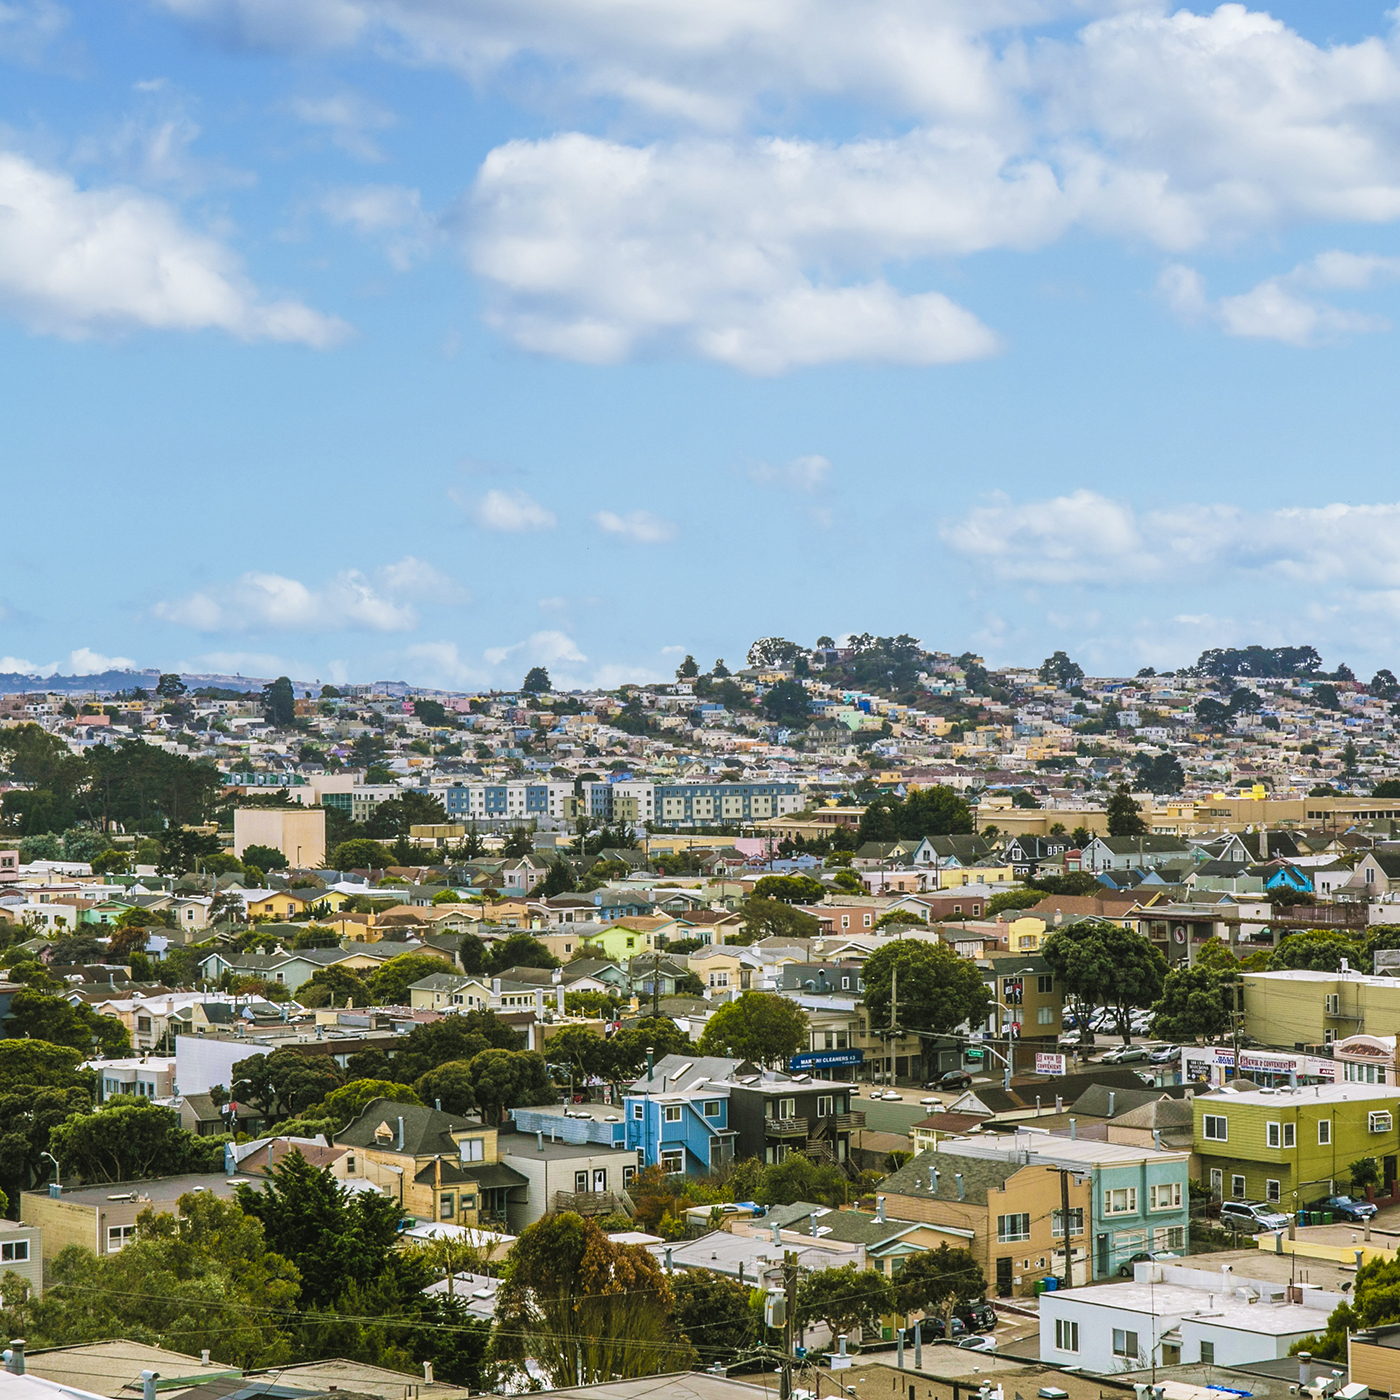 Westwood Real Estate, Homes & Houses for Sale, San Francisco CA | PARAGON Real Estate Group